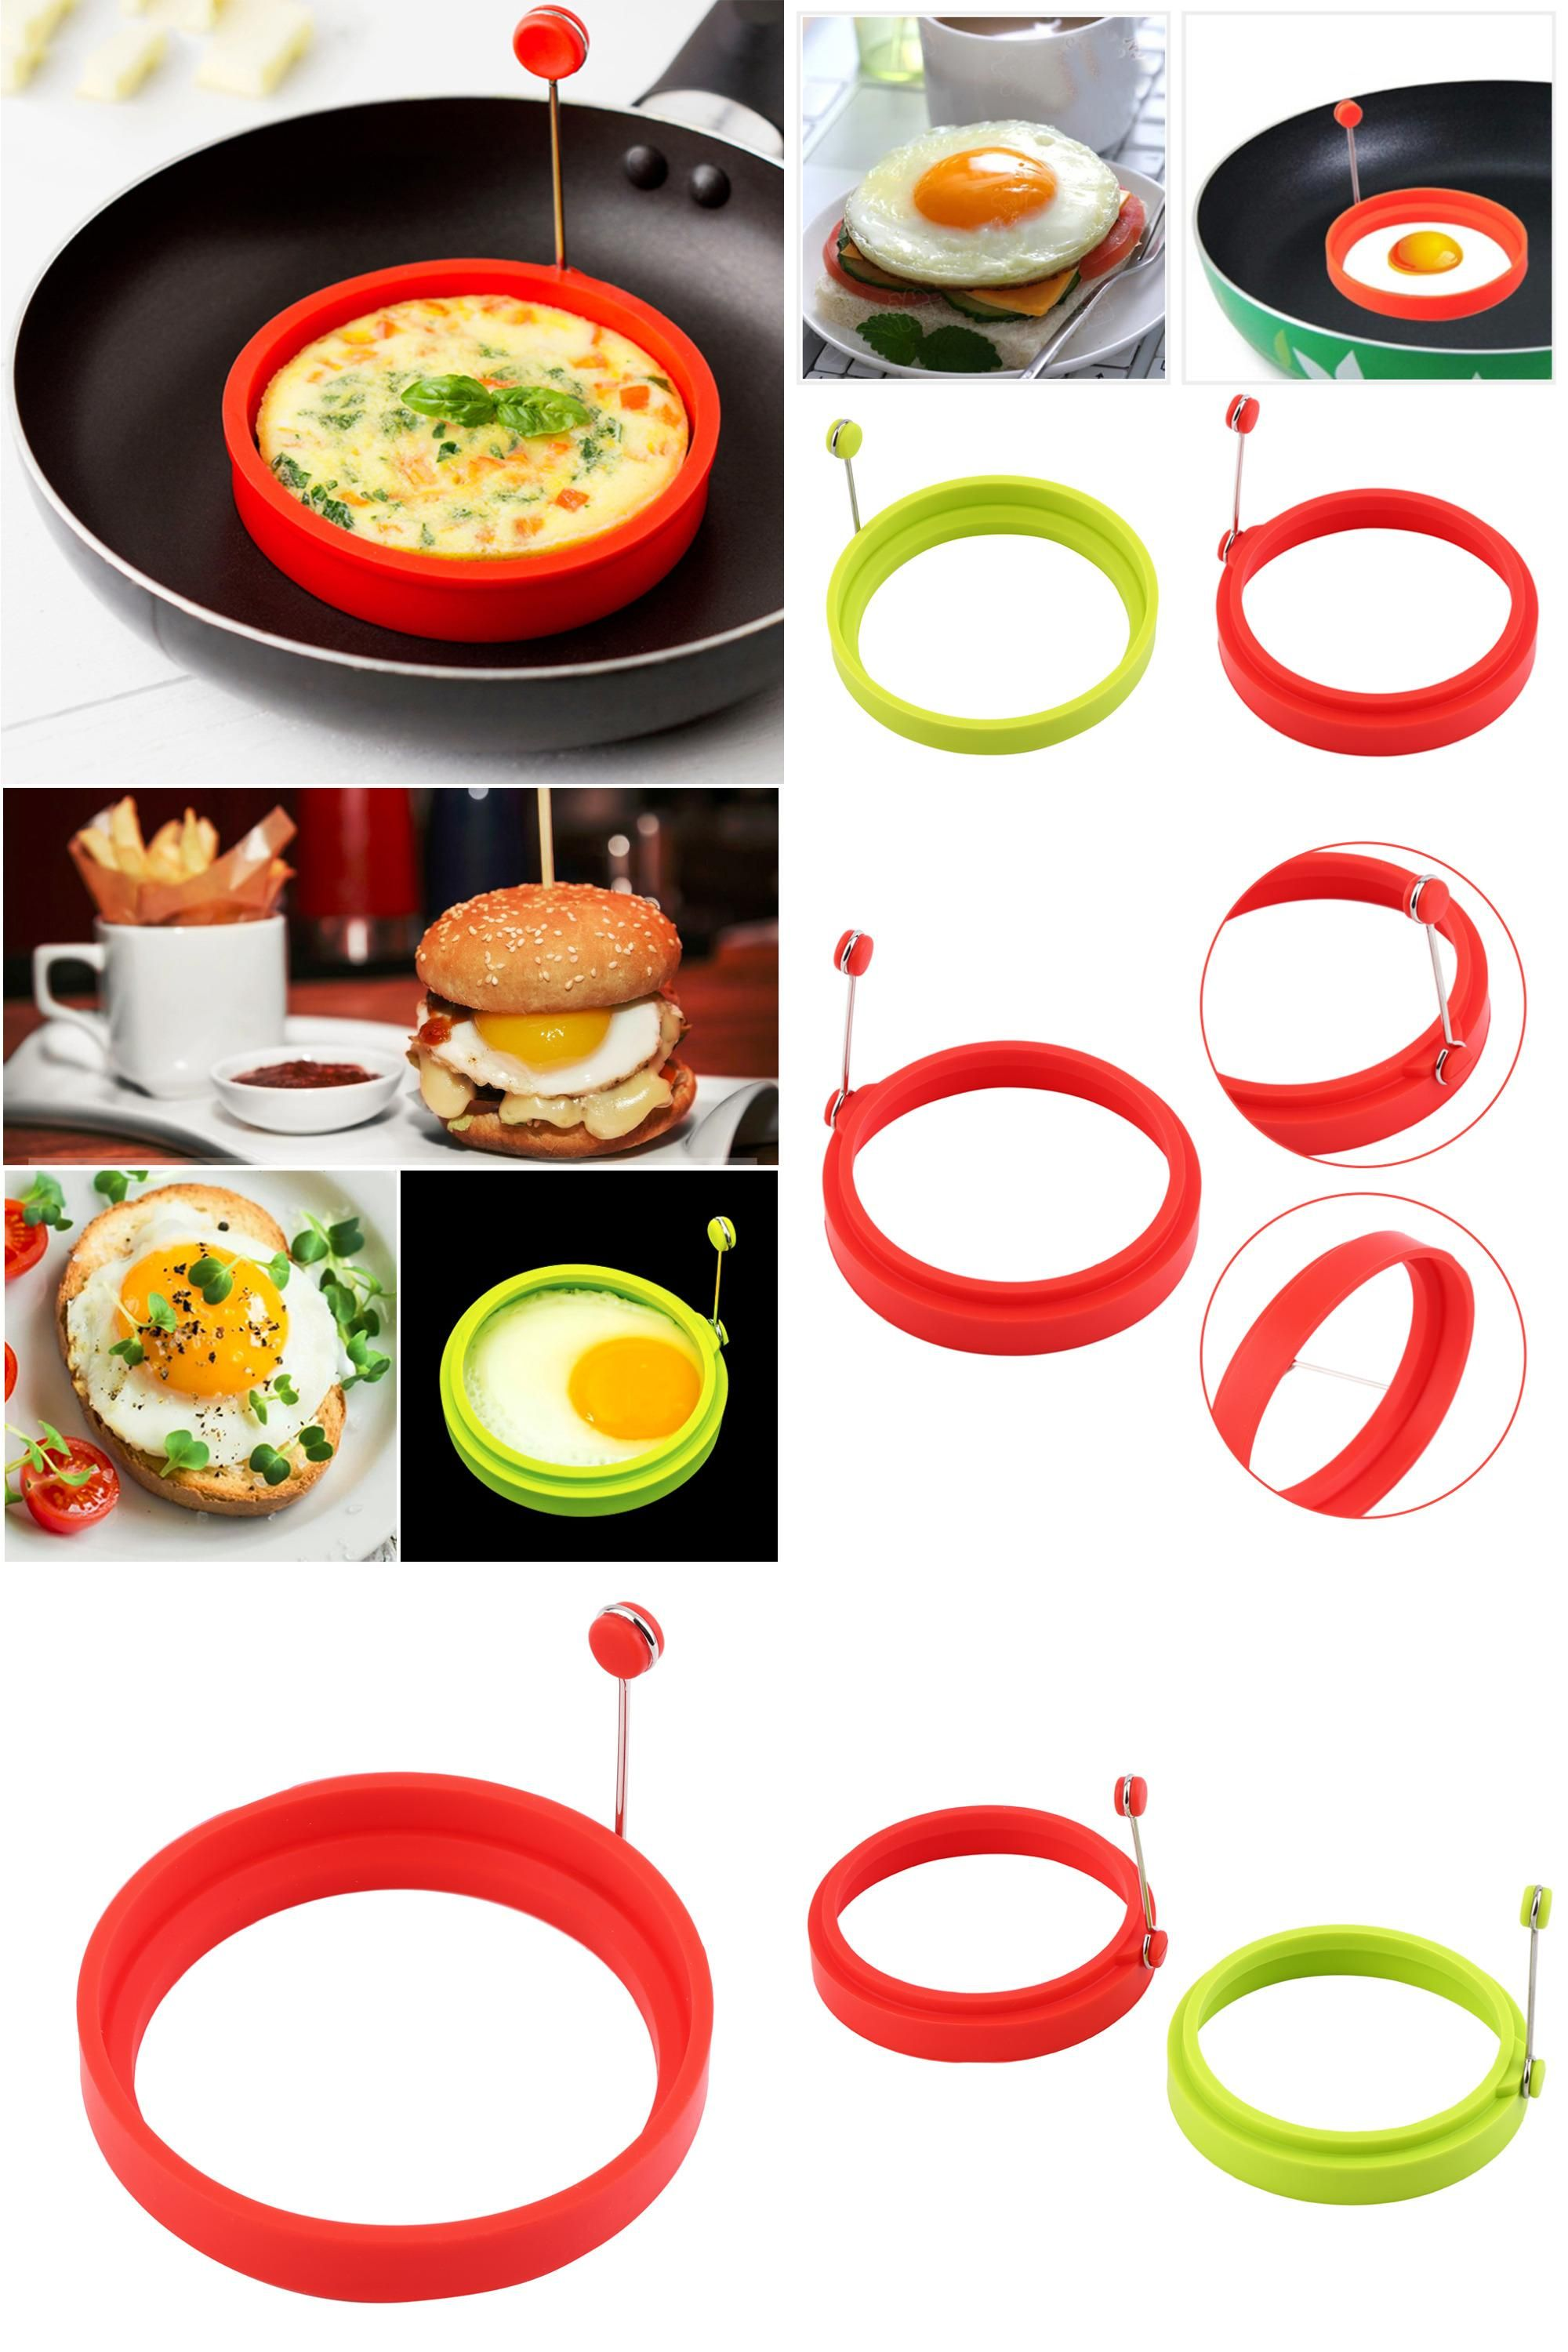 Egg Tools Useful Round Shape Egg Mold Silicone Omelette Shape Egg Fried Frying Pancake Cooking Mould Breakfast Essential Kitchen Tools